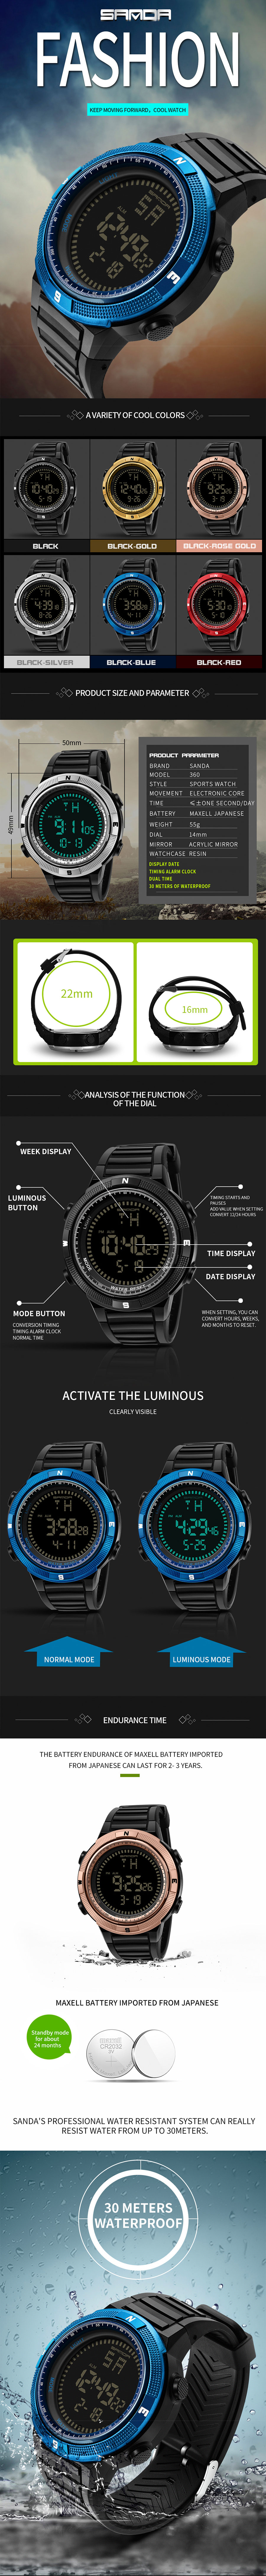 SANDA 360 Fashion Silicone Luminous Display Digital Watch